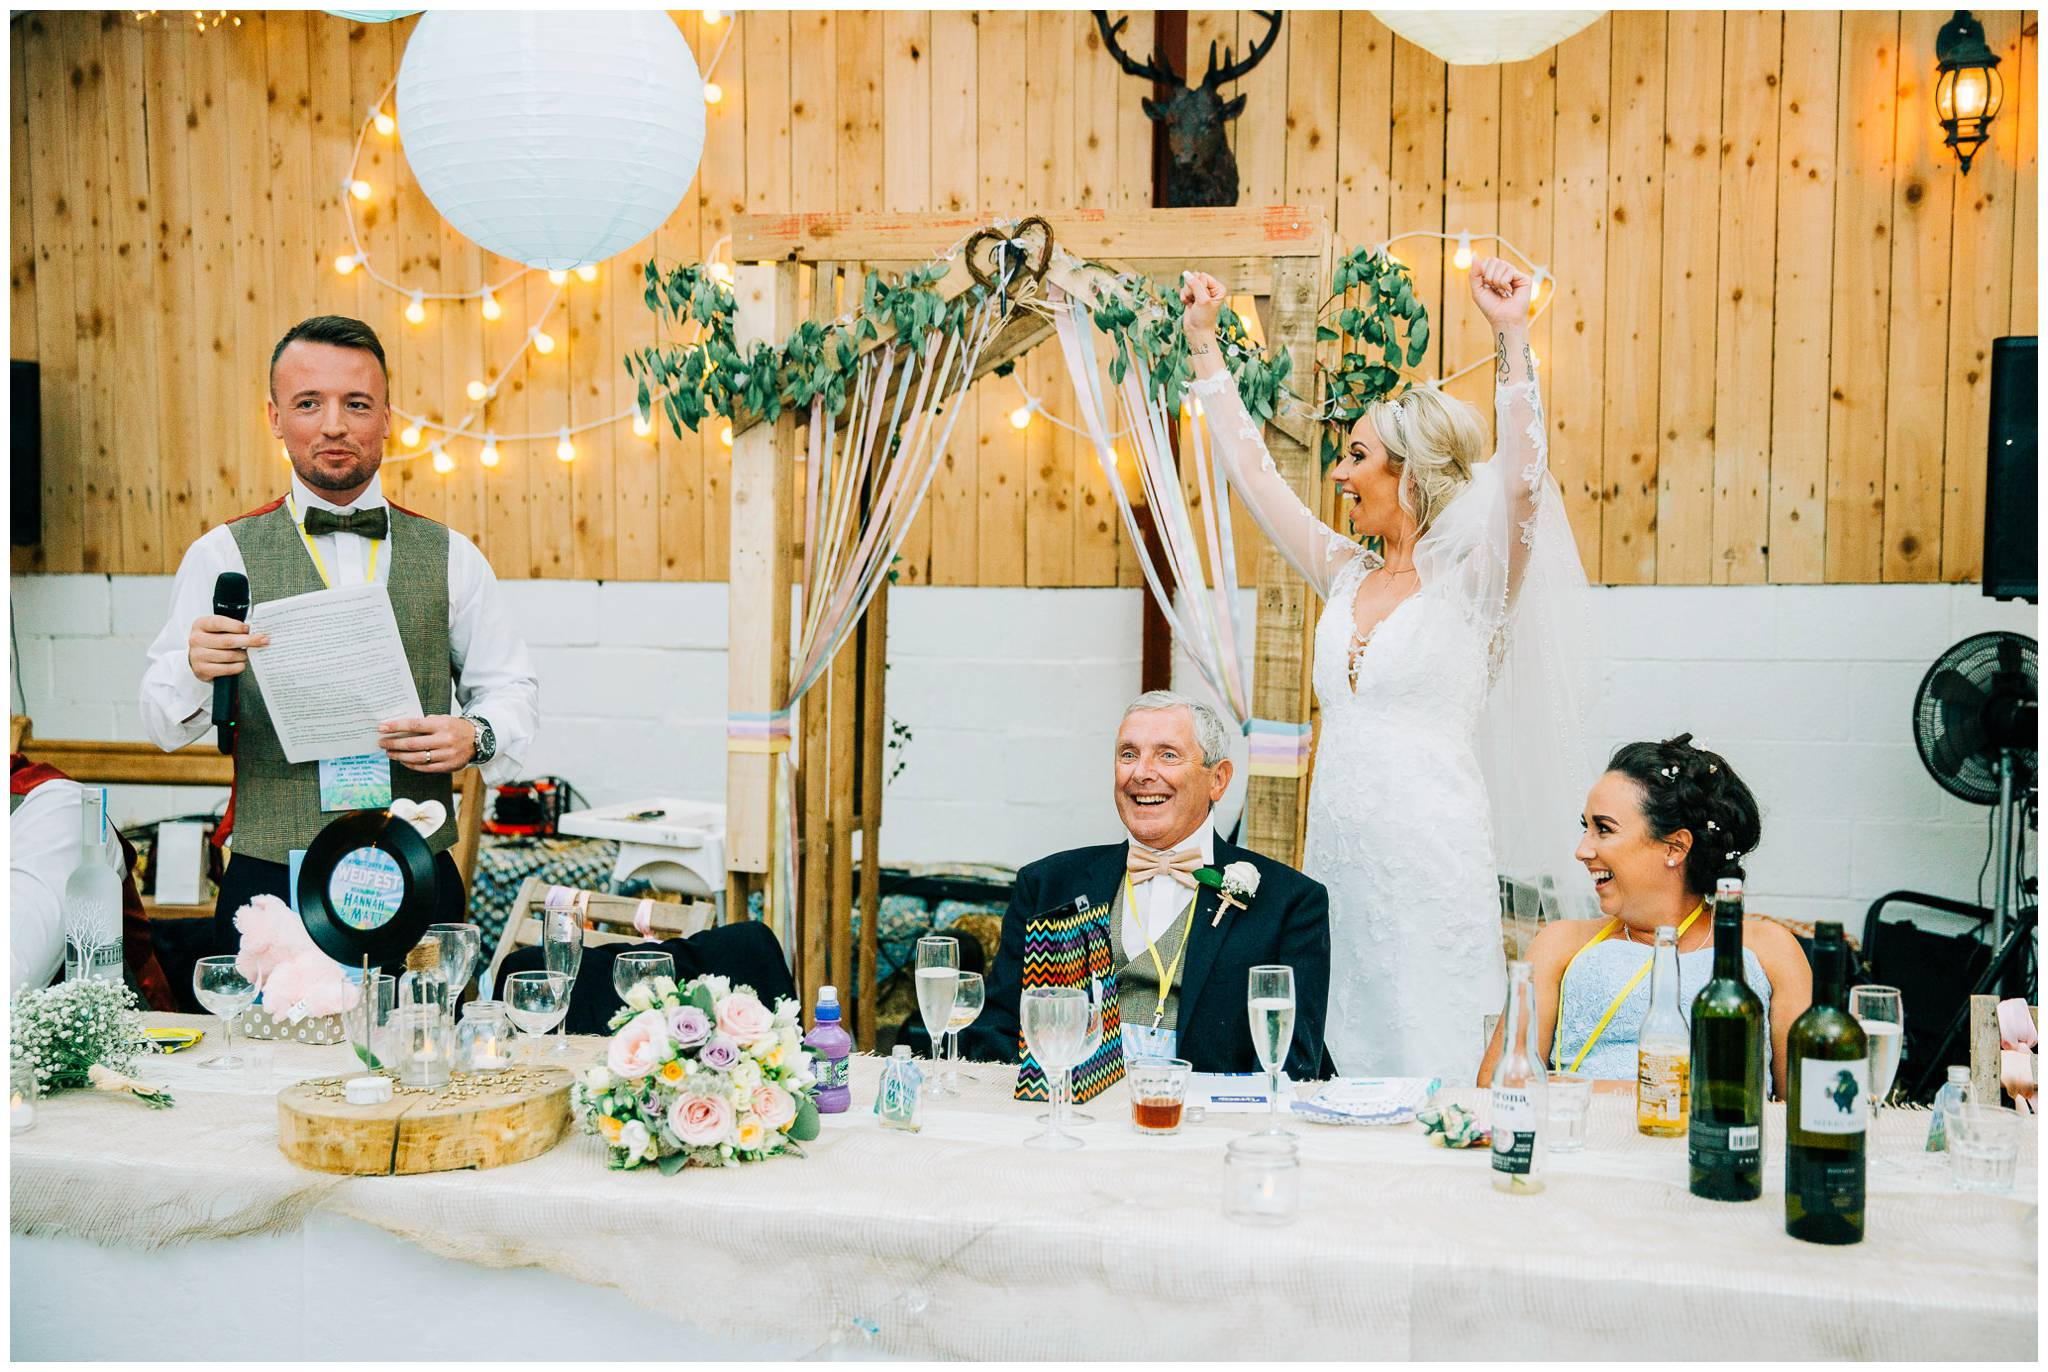 Festival wedding at Wellbeing Farm  - Bolton Wedding Photographer_0078.jpg